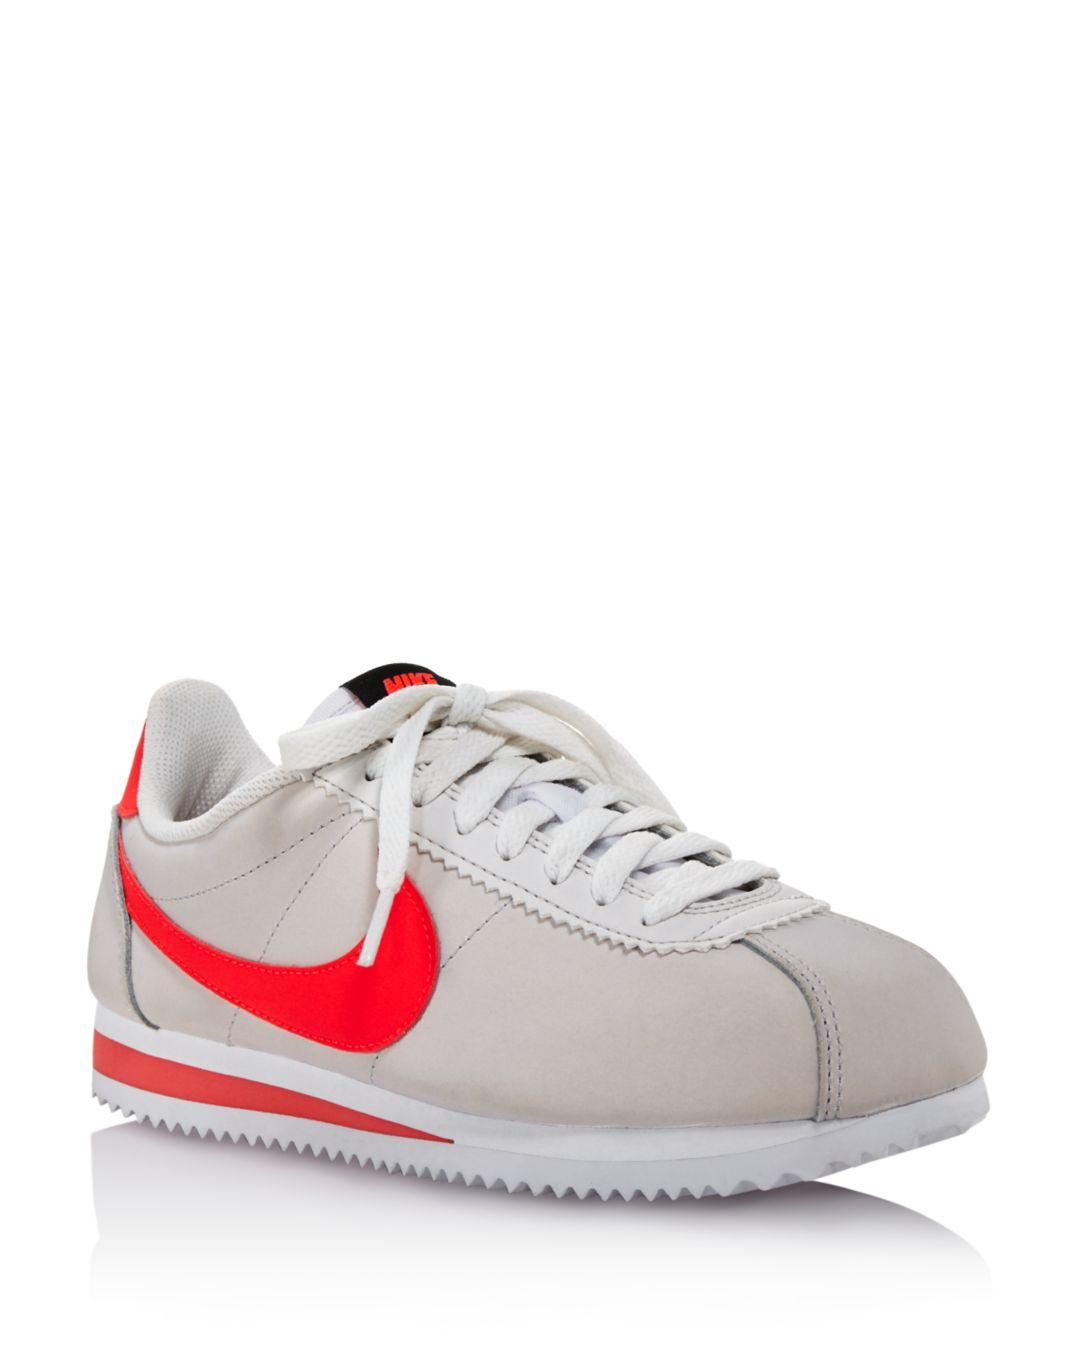 53b480584c0 Lyst - Nike Women s Classic Cortez Leather Lace Up Sneakers in White ...